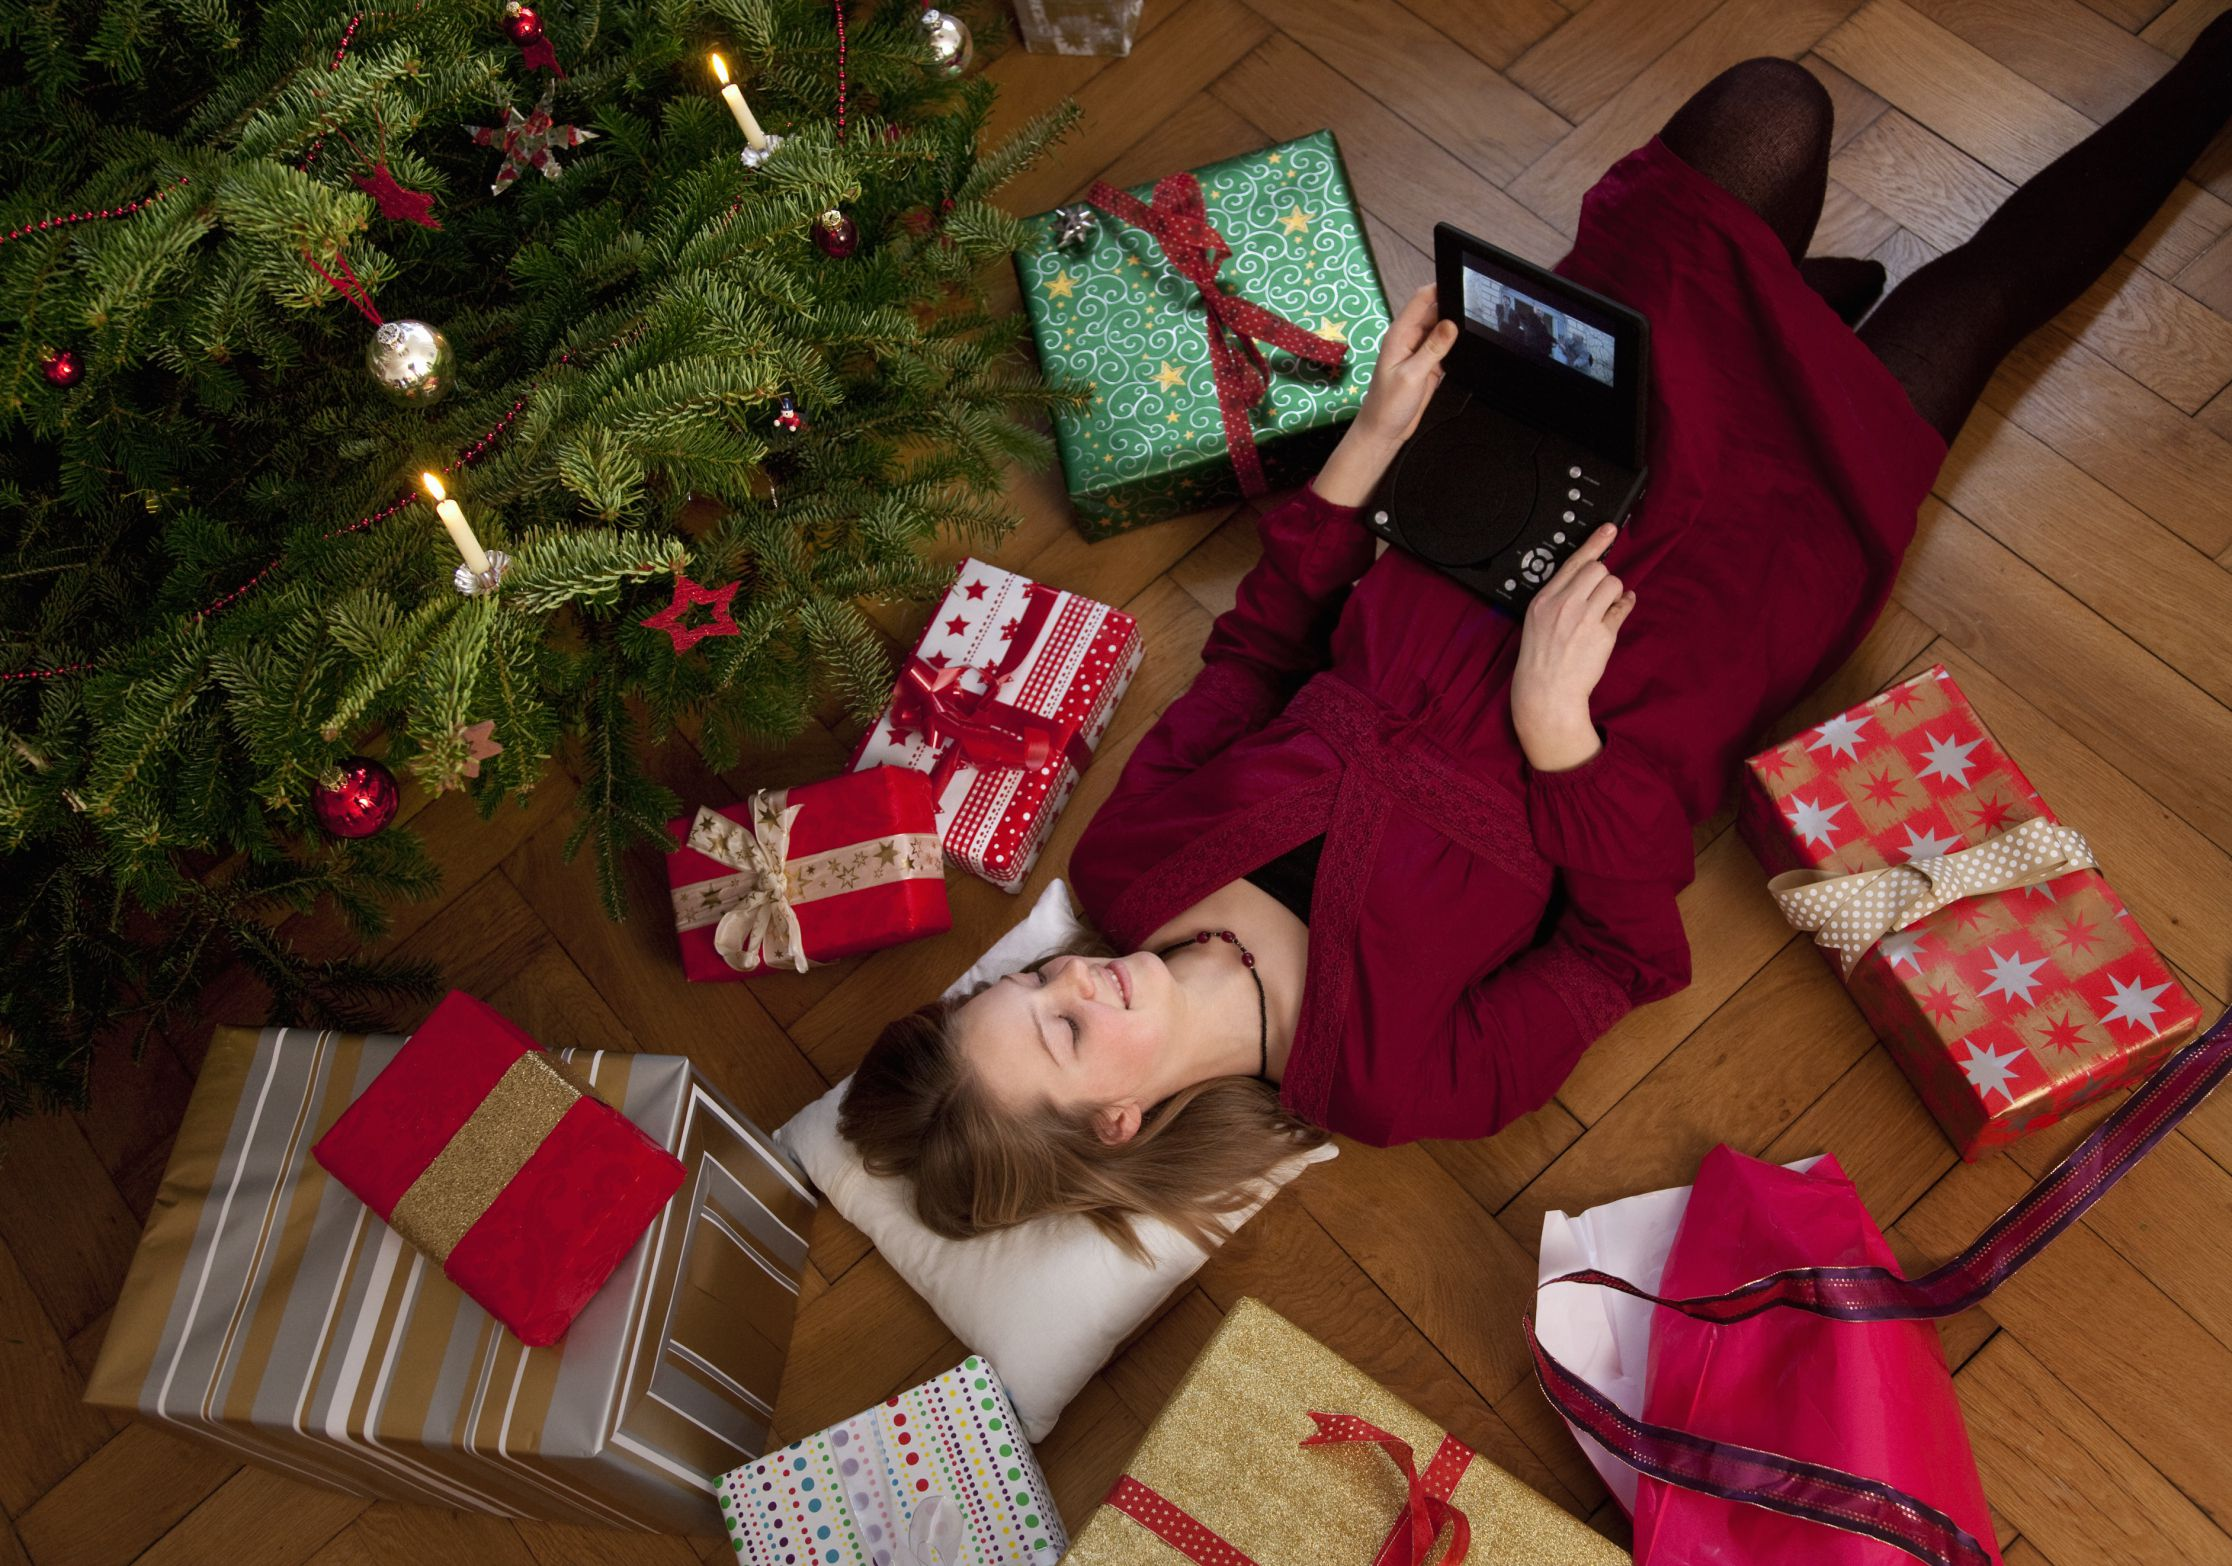 free christmas movies specials and videos on the web